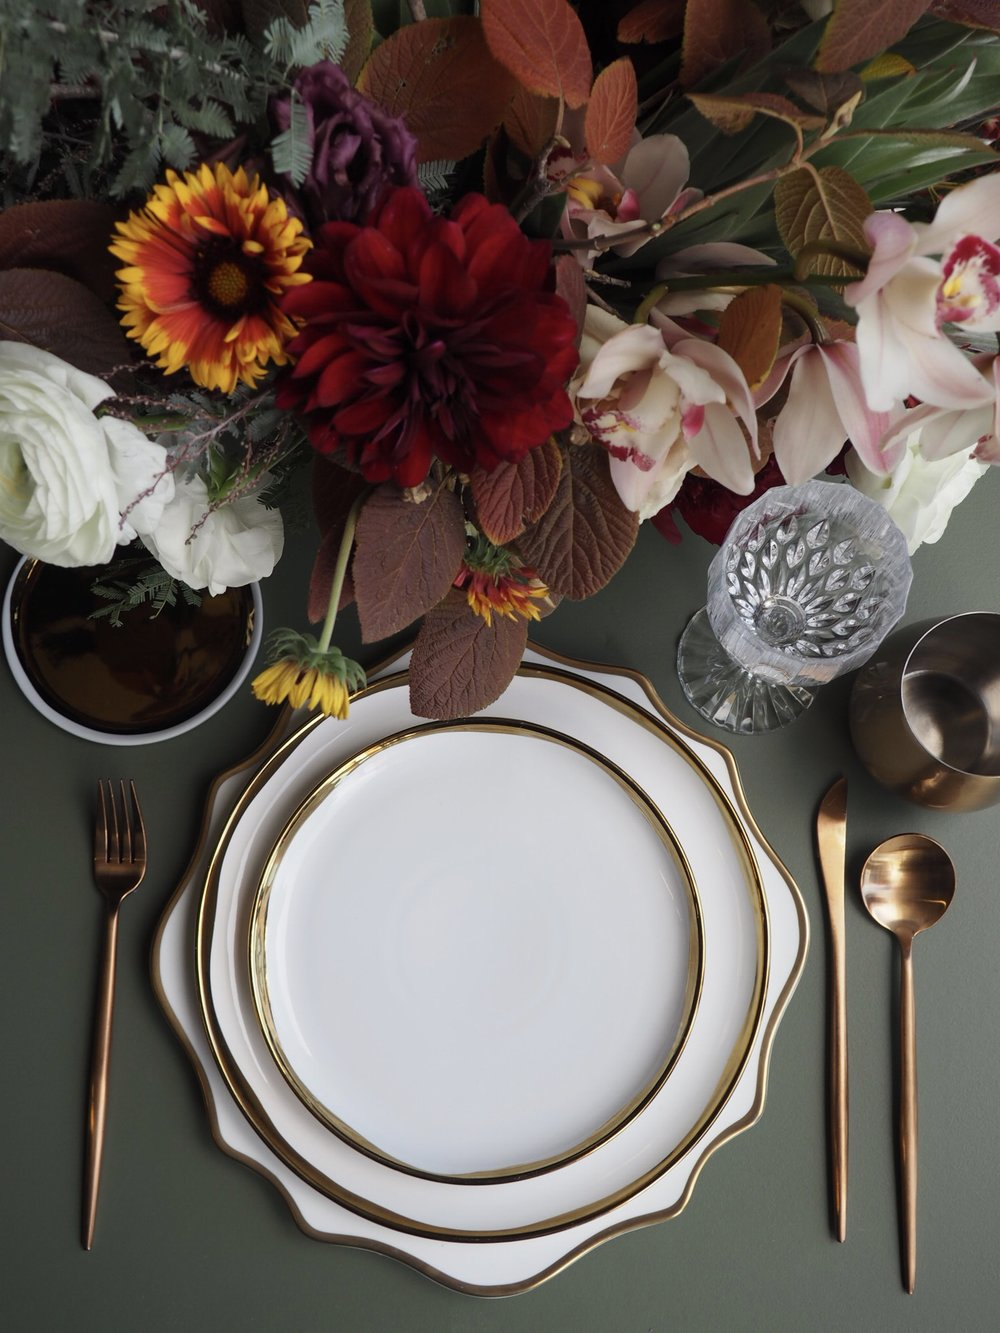 Featuring: Eclectic Crystal Goblet, Gold Stemless, Rose Gold Flatware, Aura Scalloped Gold & White Charger, Aura Gold & White Dinner Plate, Aura Gold & White Salad Plate & Gold & White B+B.